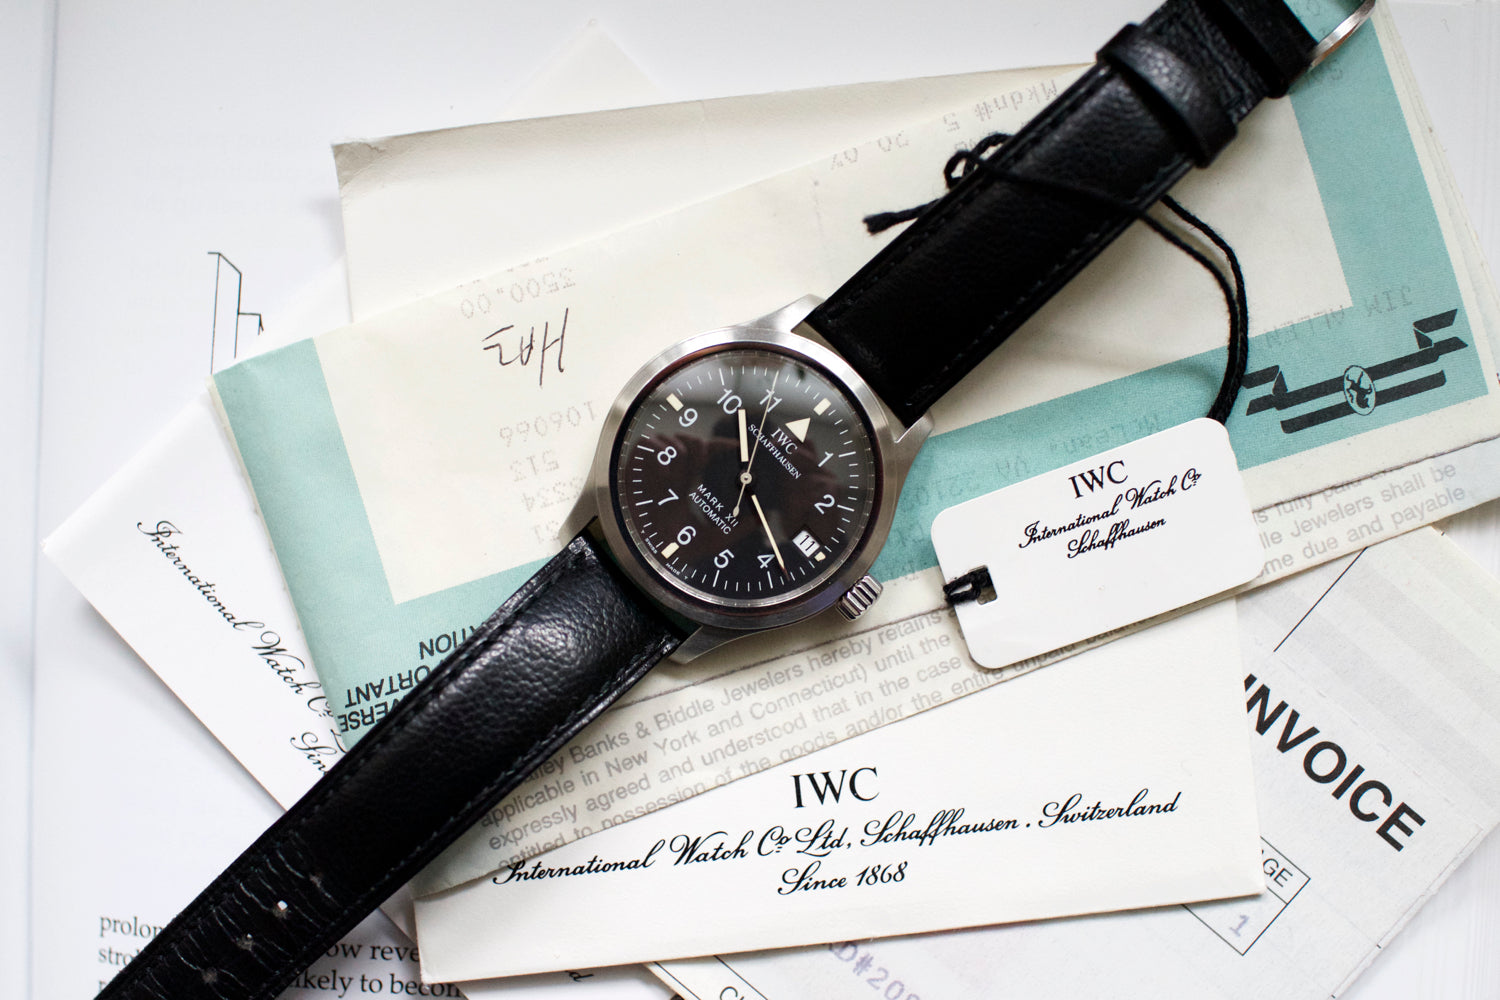 IWC 3241 Mark XII Men's Pilots Watch Box and Papers